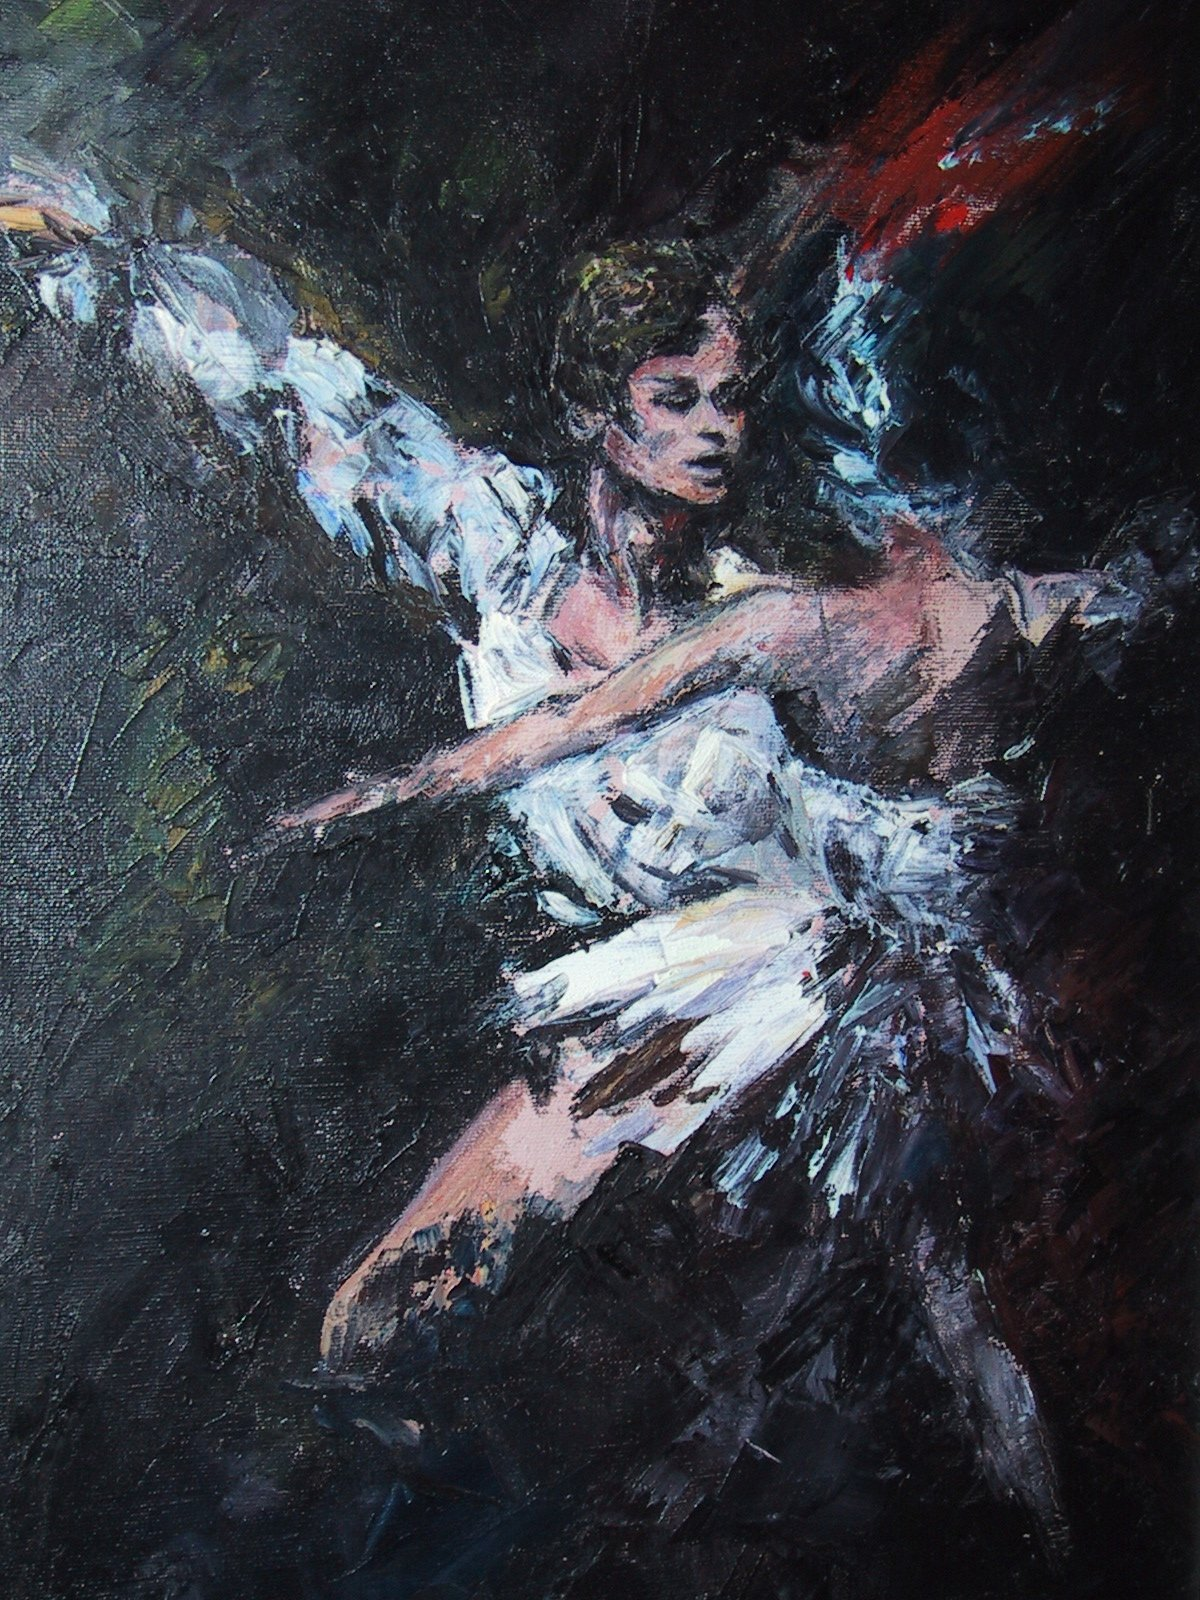 Irina Belotelkin's oil portrait of Mikhail Baryshnikov, one of the greatest male dancers of the last half a century.